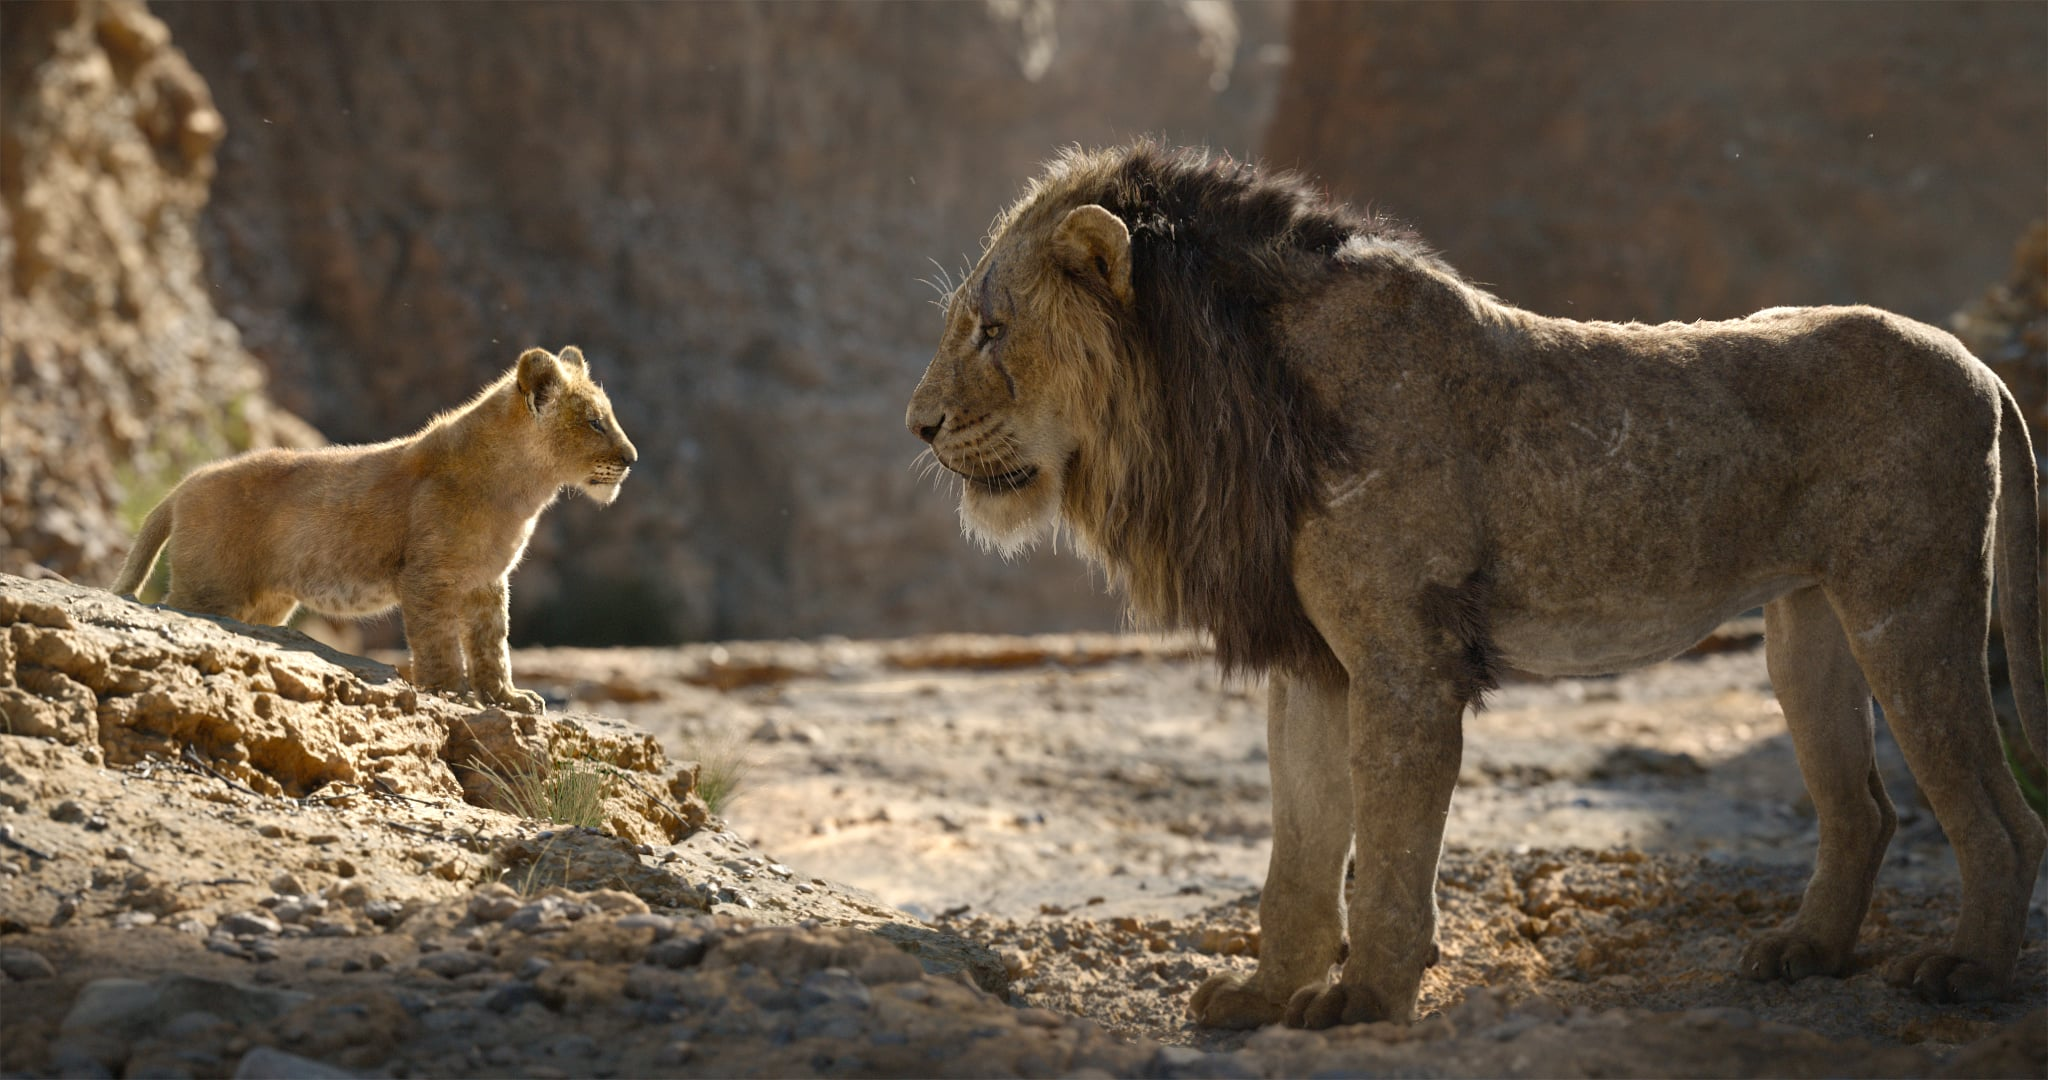 THE LION KING, from left: young Simba (voice: JD McCrary), Scar (voice: Chiwetel Ejiofor), 2019.  Walt Disney Studios Motion Pictures / courtesy Everett Collection